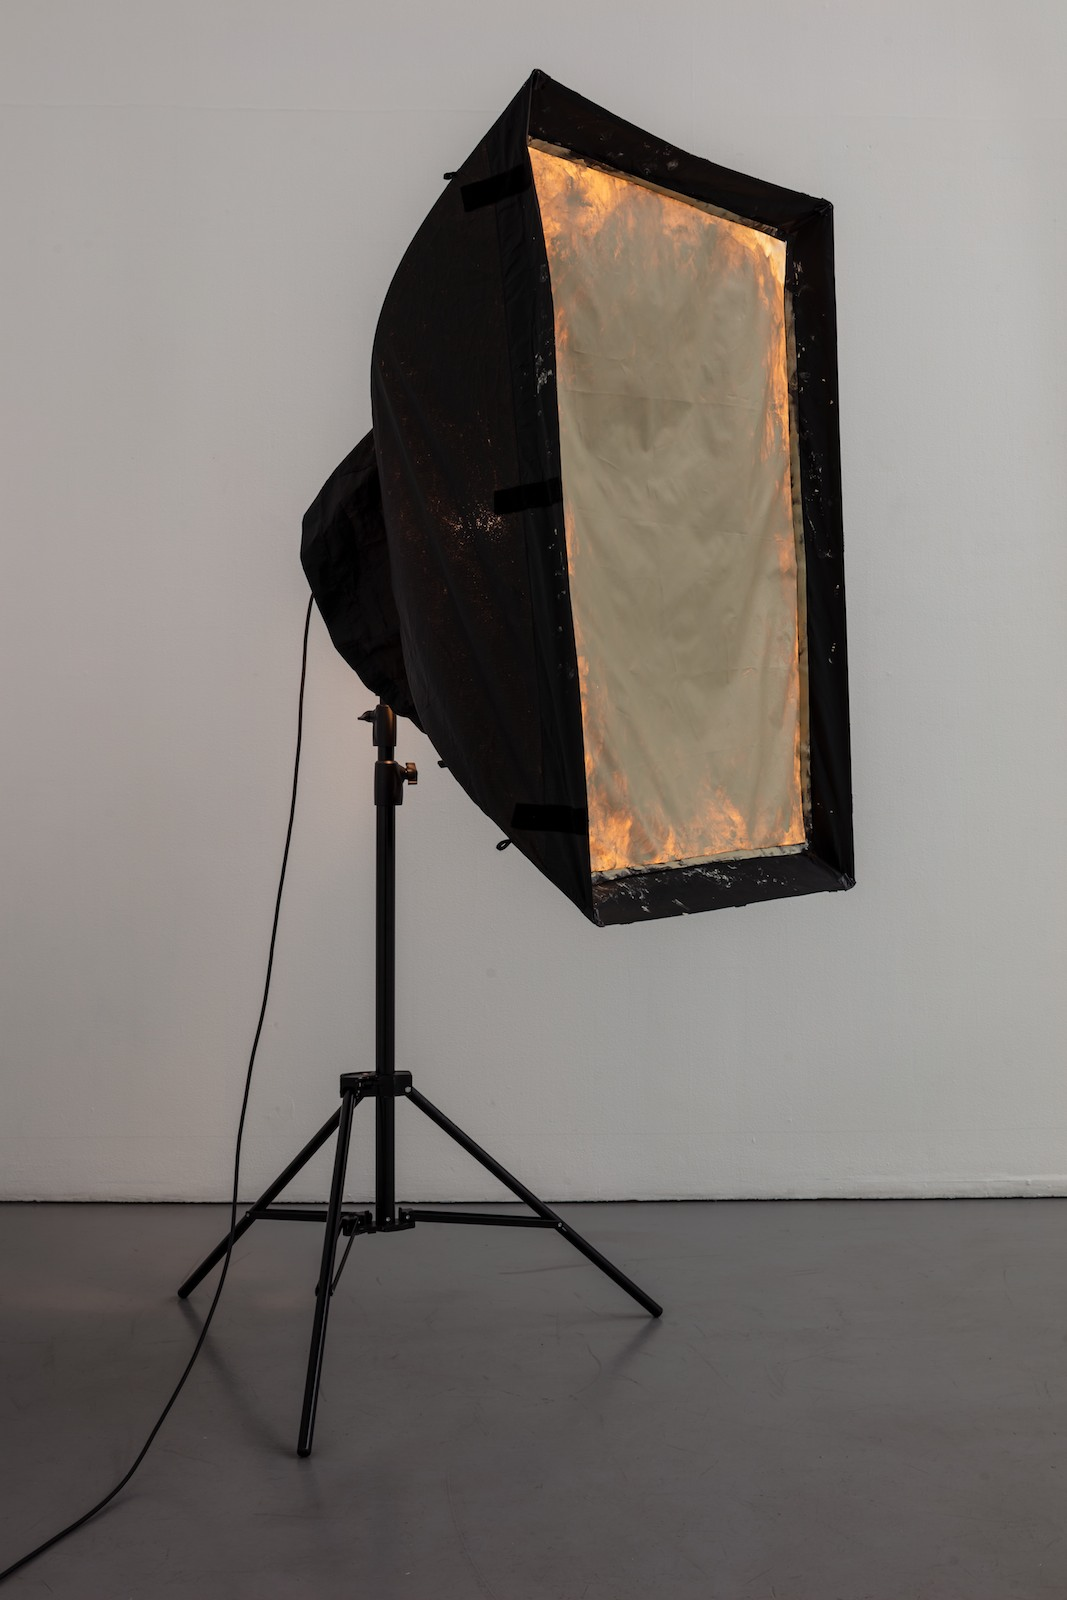 Softbox, 2016, softbox, studio light, tripod and acrylic on screenprint mesh, 210 x 90 x 100 cm